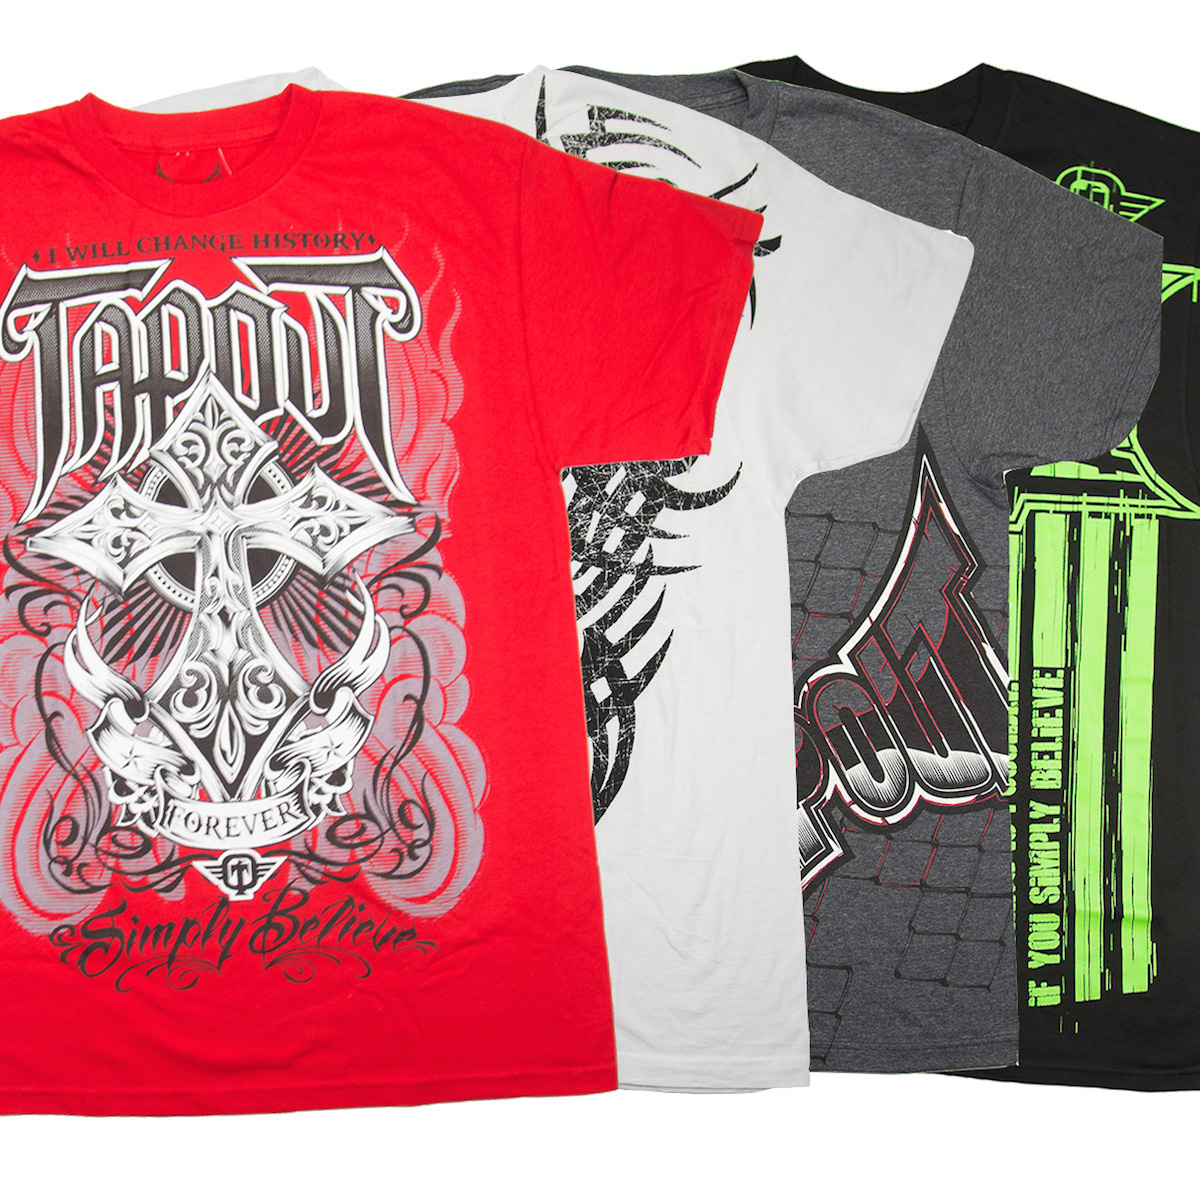 Tapout T-Shirts UFC MMA Tap Out Mixed Martial Arts 100% Cotton Graphic Tees